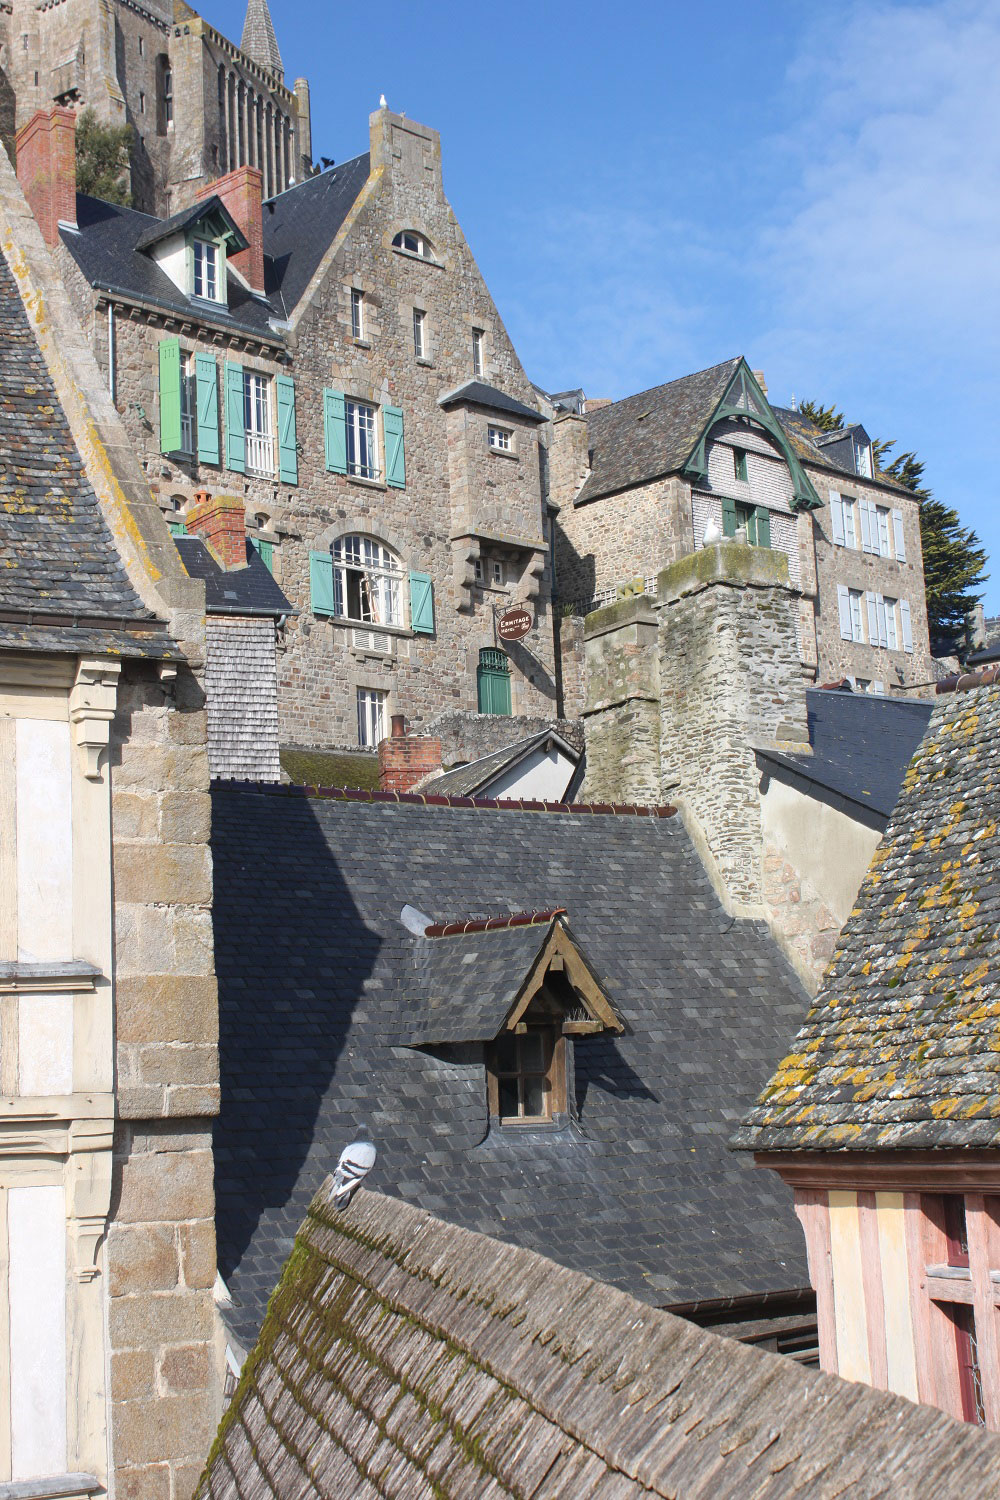 The medieval buildings of Mont St-Michel